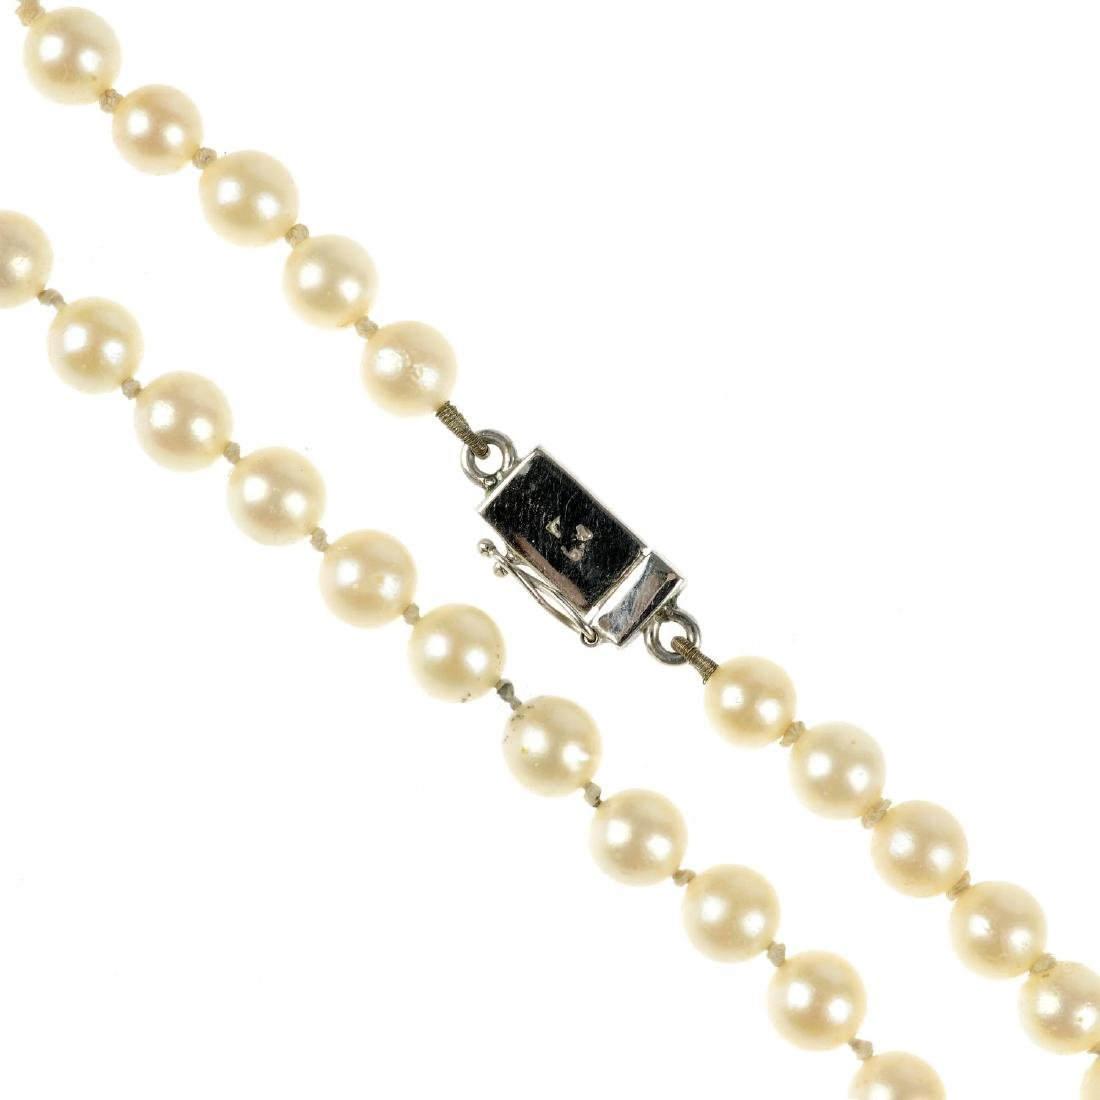 A cultured pearl necklace. The single row of cultured